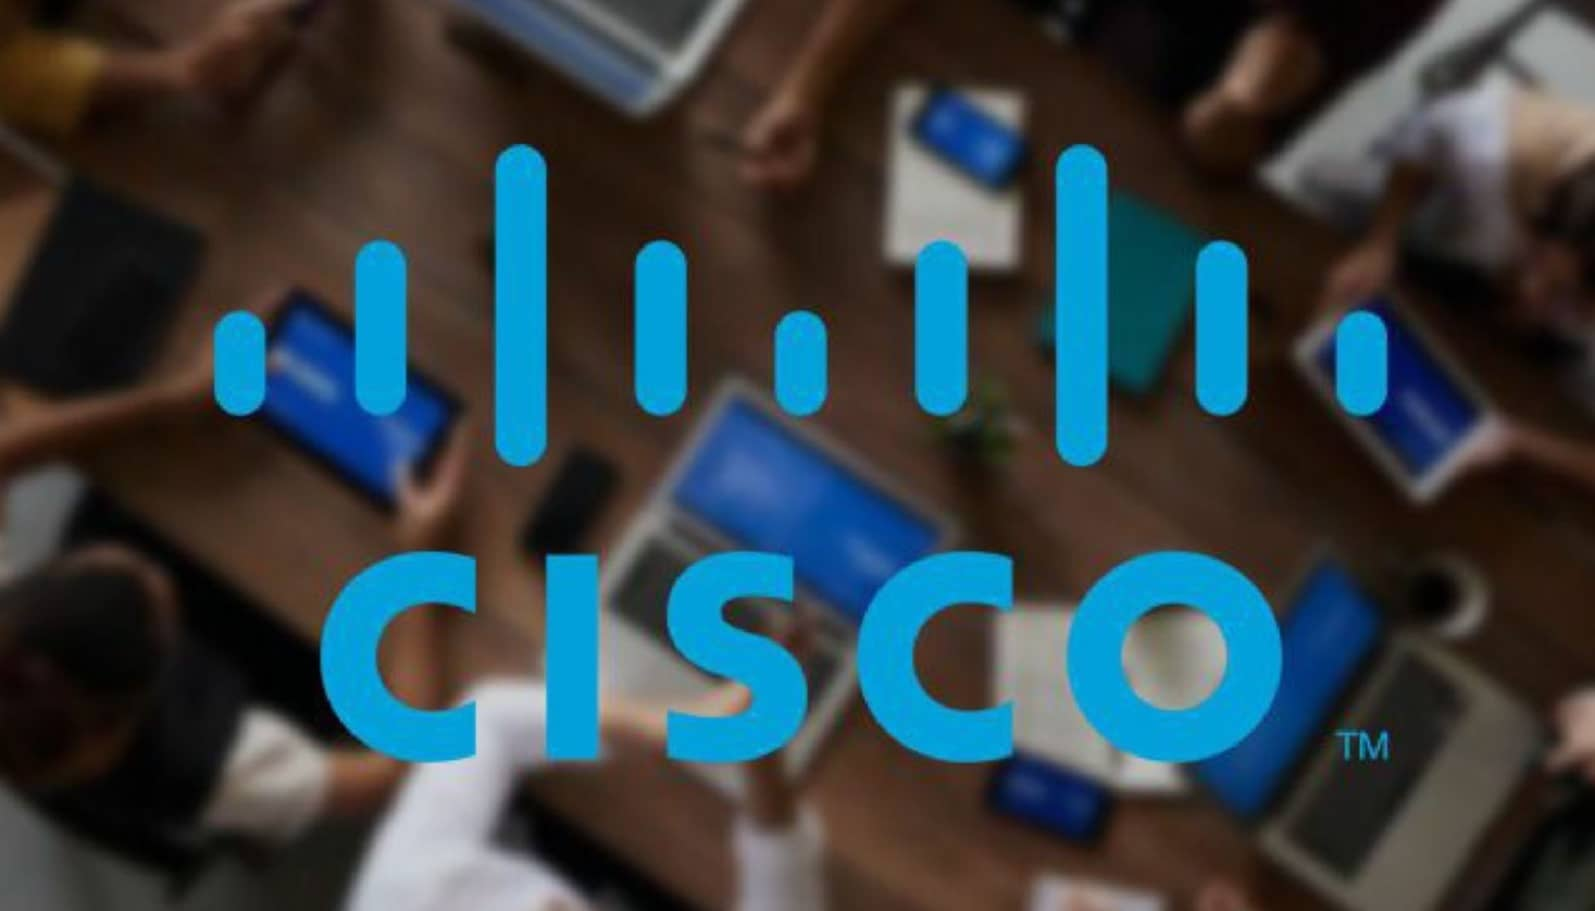 Cisco offers 0% financing program to support Filipino SMEs